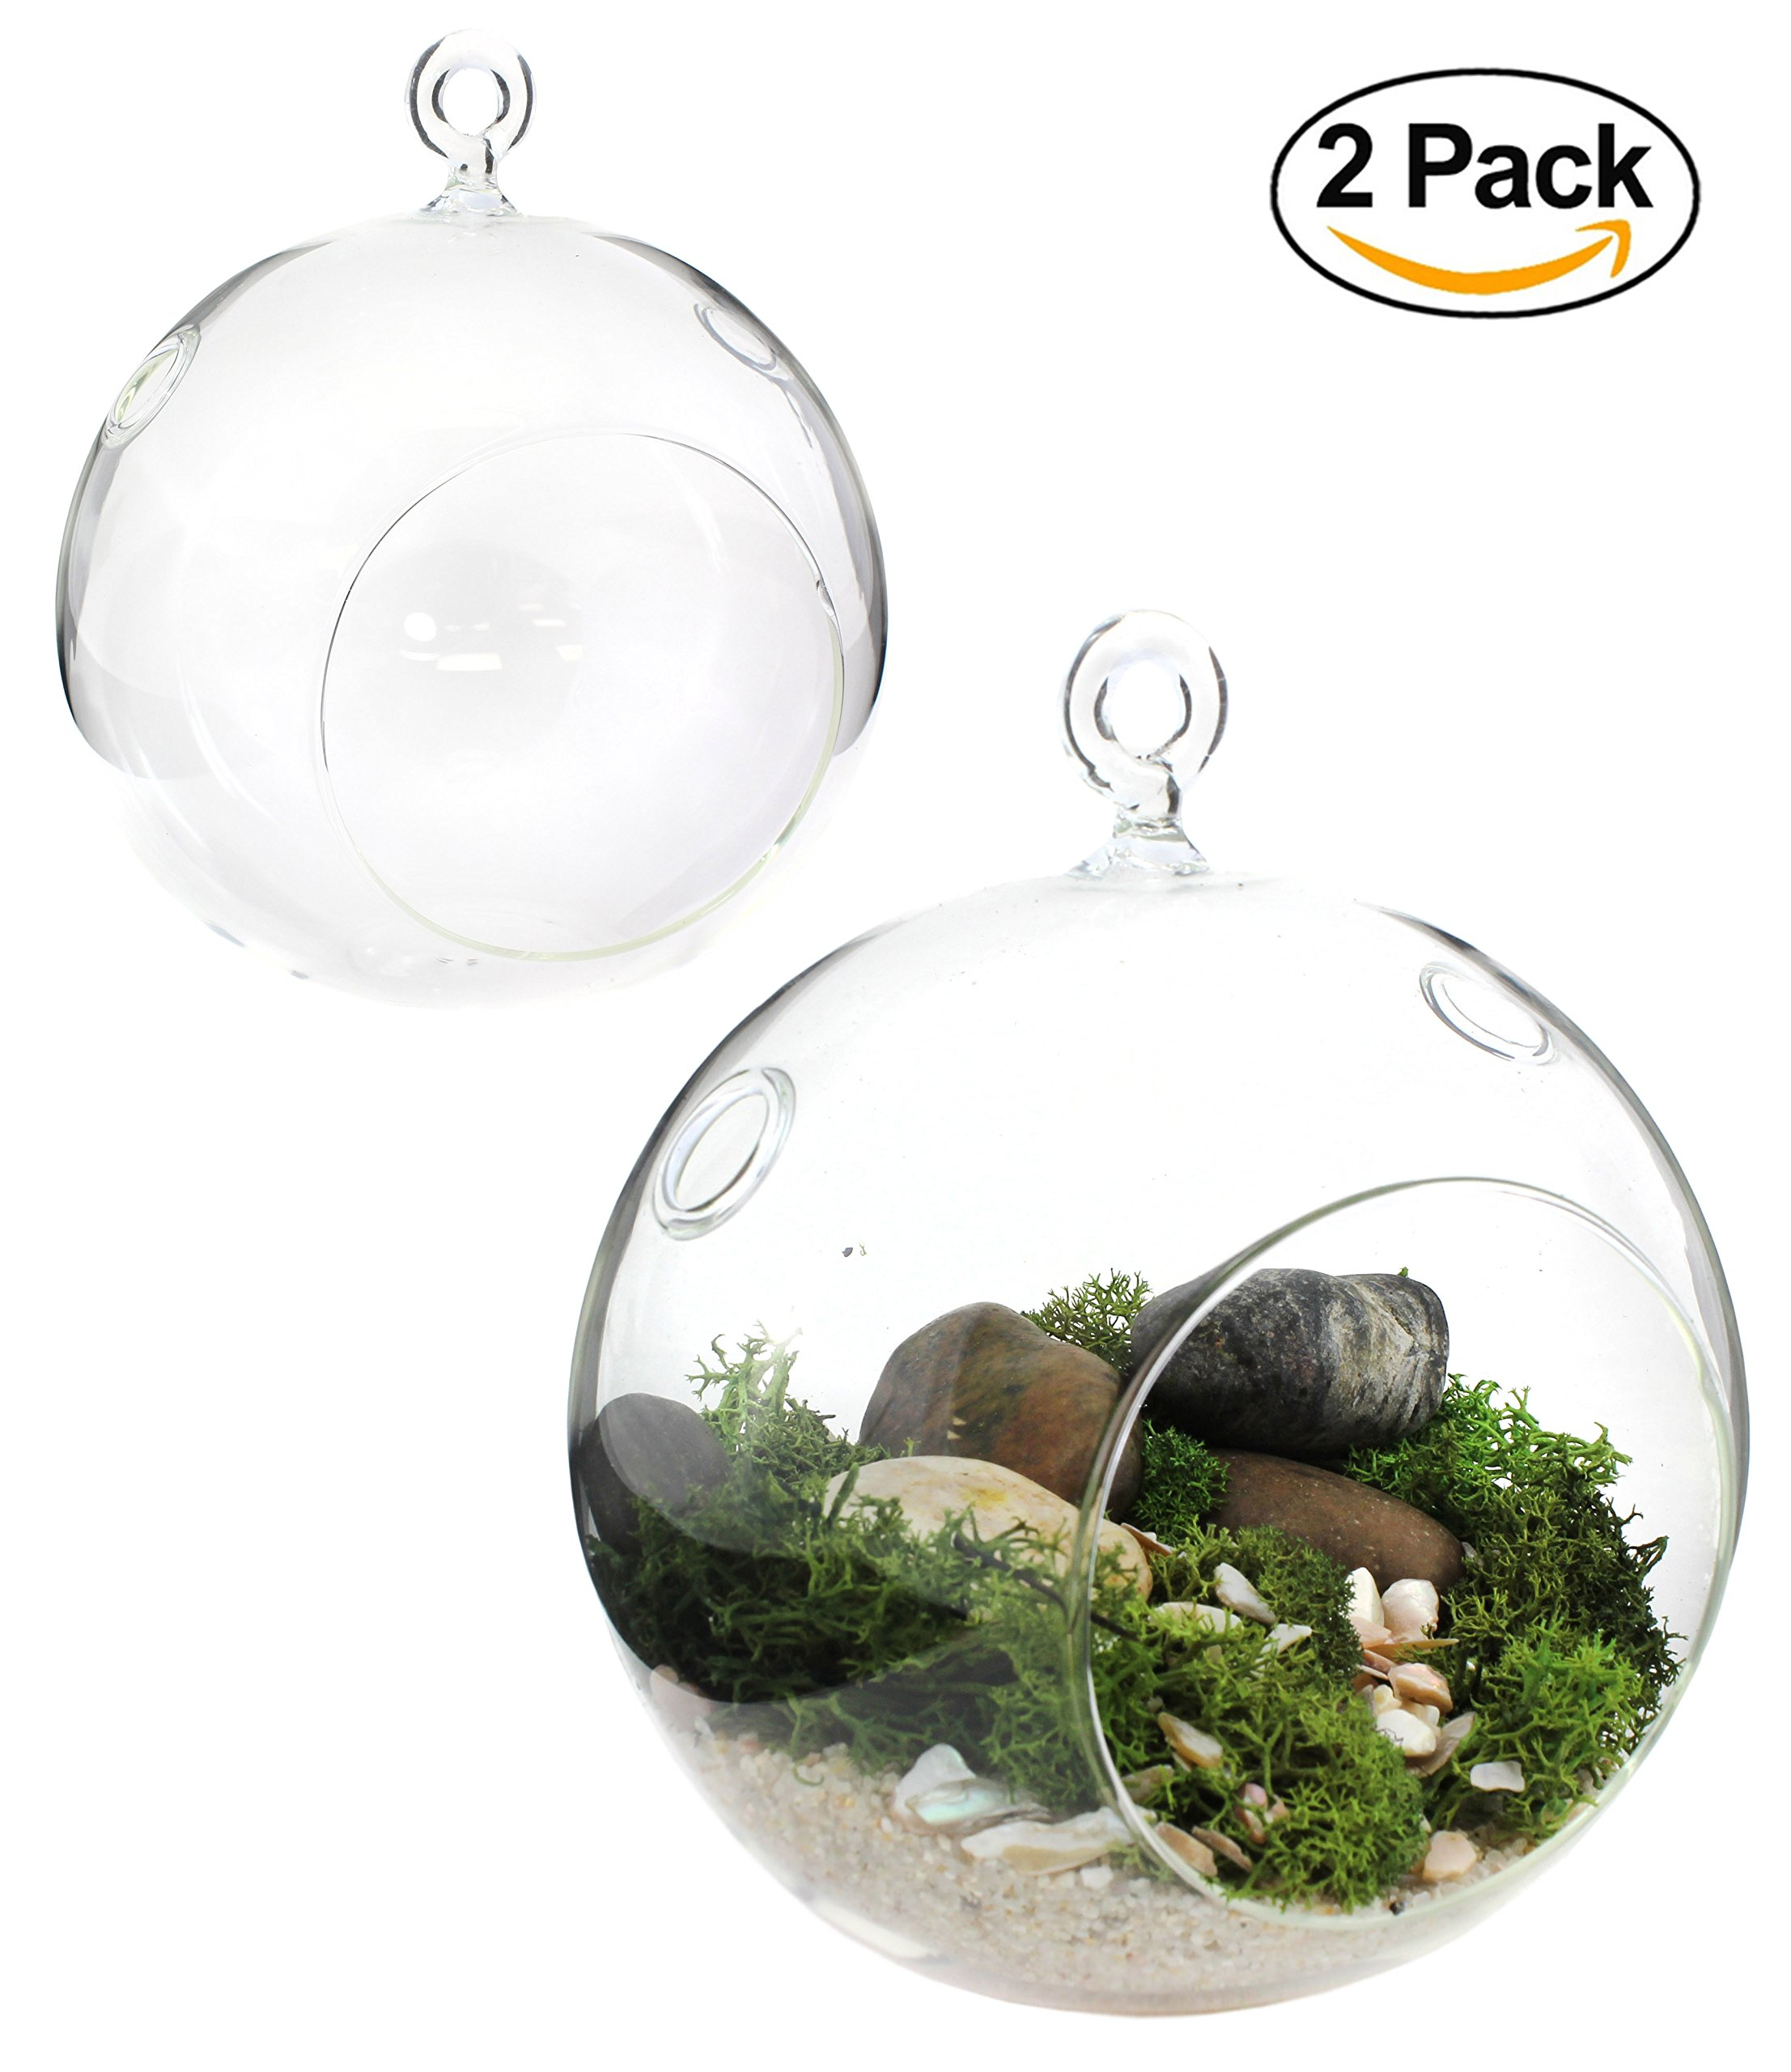 2-Pack Round Glass Terrariums for Succulents & Air Plants 6.5'' x 5'', Large Globe Orb Planters